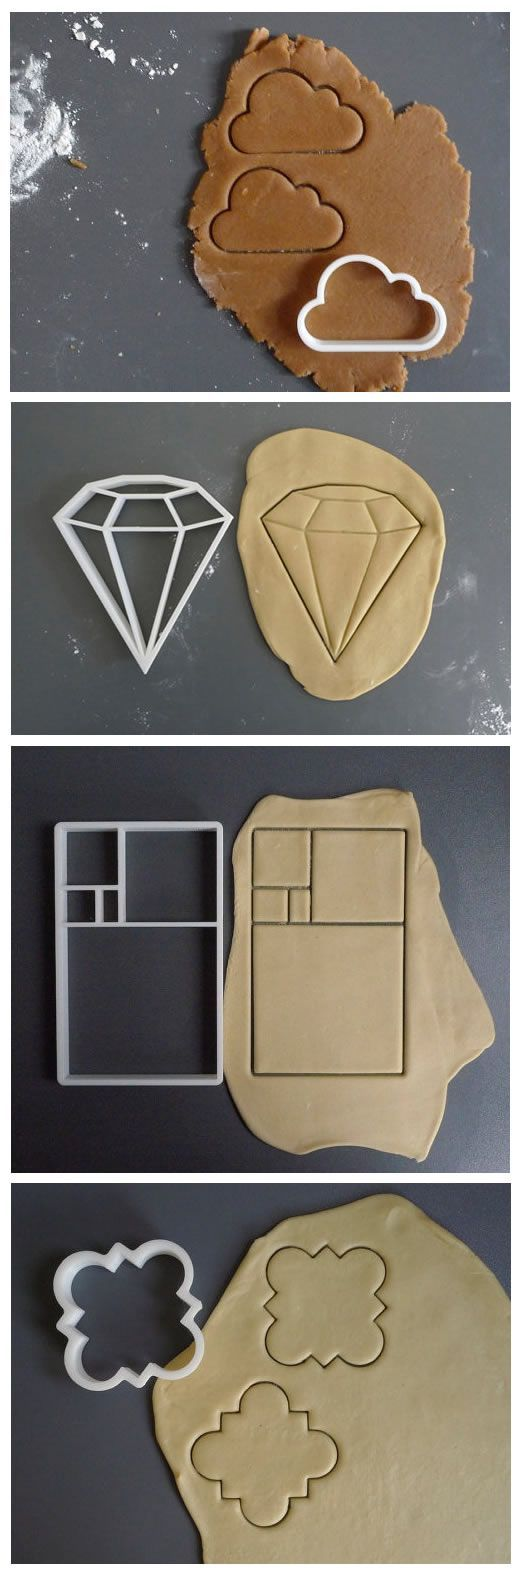 Geek cookie cutters 3d printed. Something fun to make with the kids on rainy summer days.